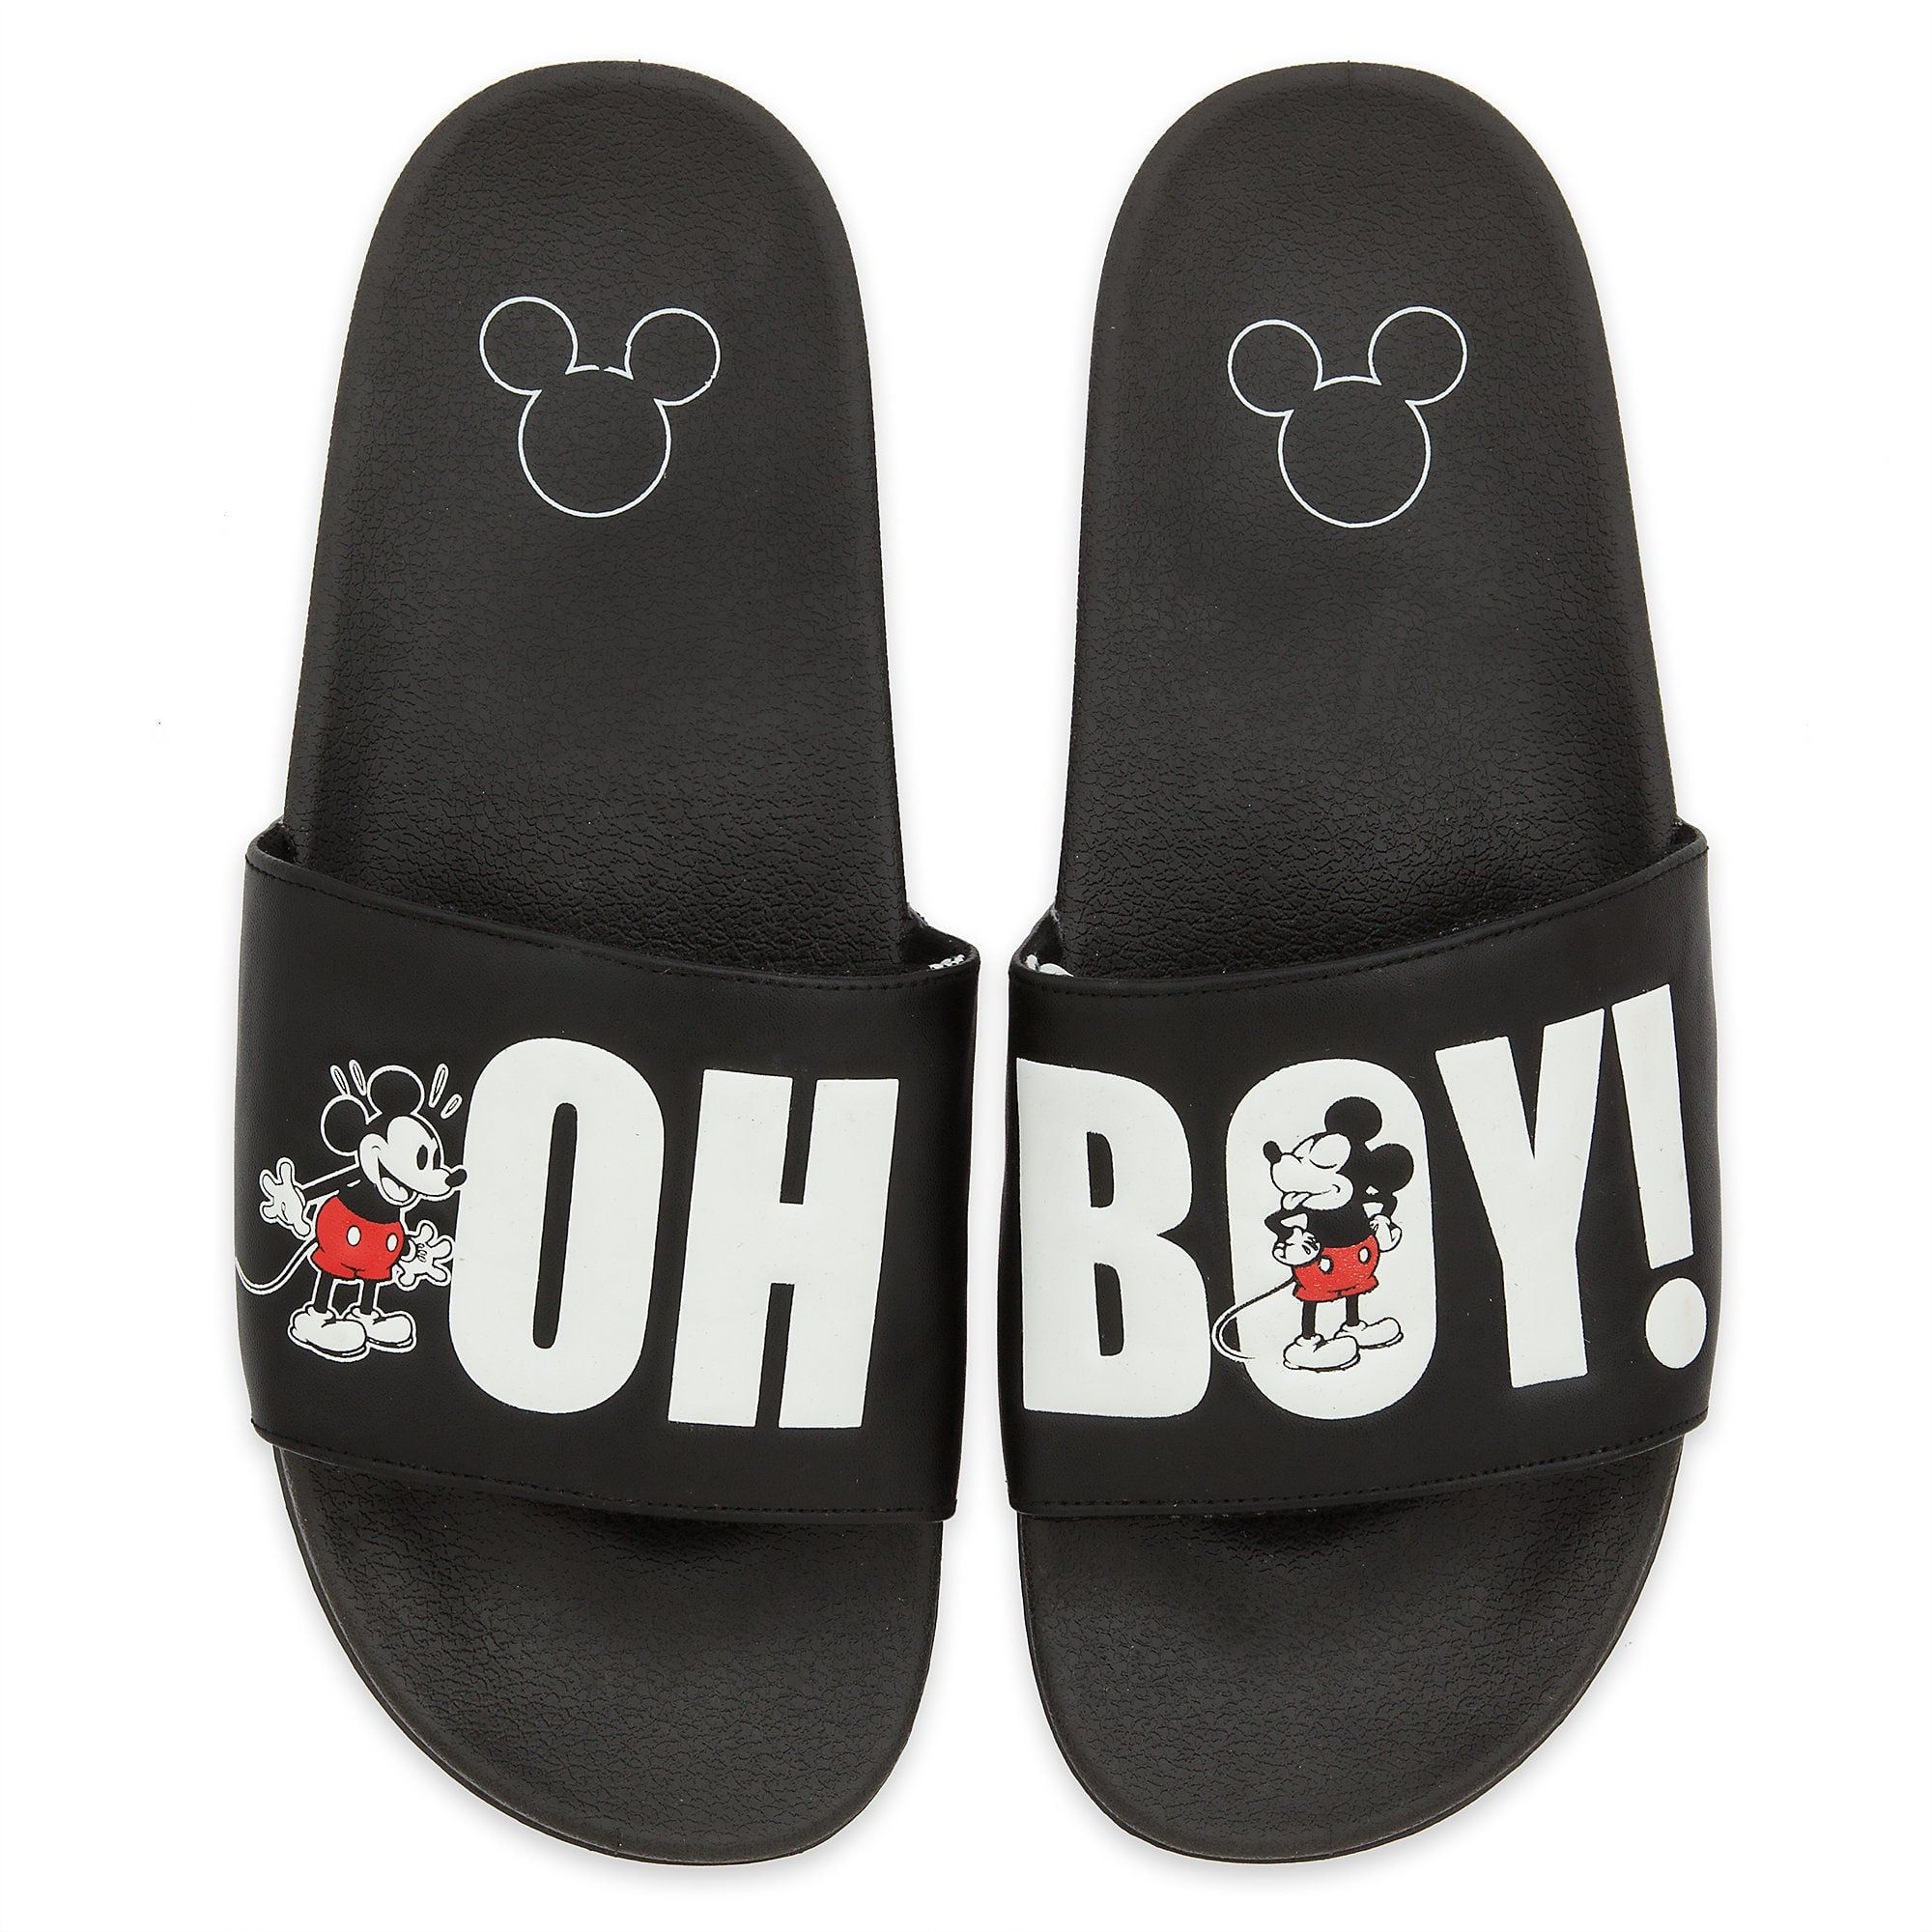 Mickey Mouse Slides for Men - Oh My